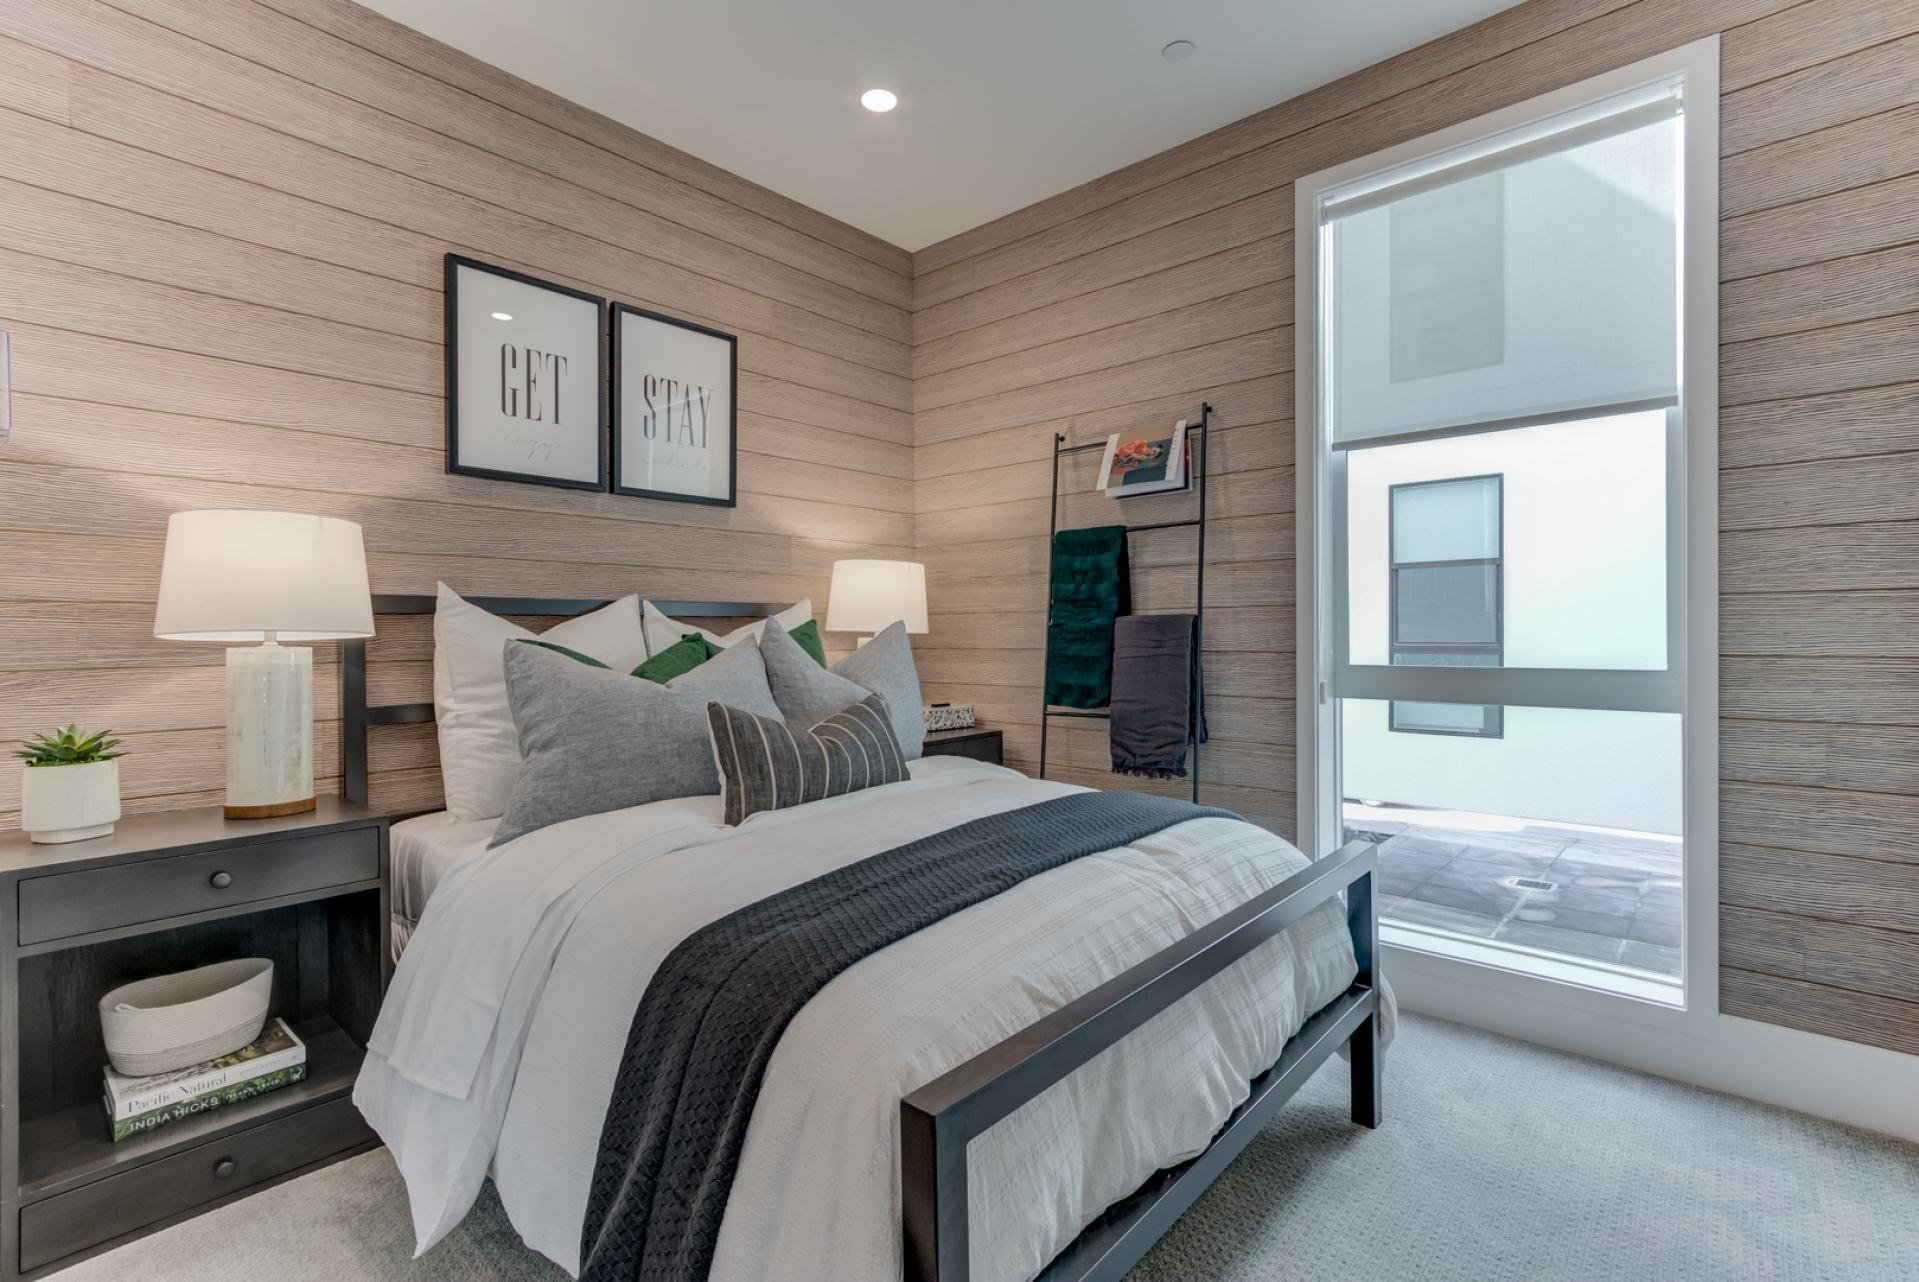 Bedroom featured in the E-Town 3 By SummerHill Homes in San Jose, CA